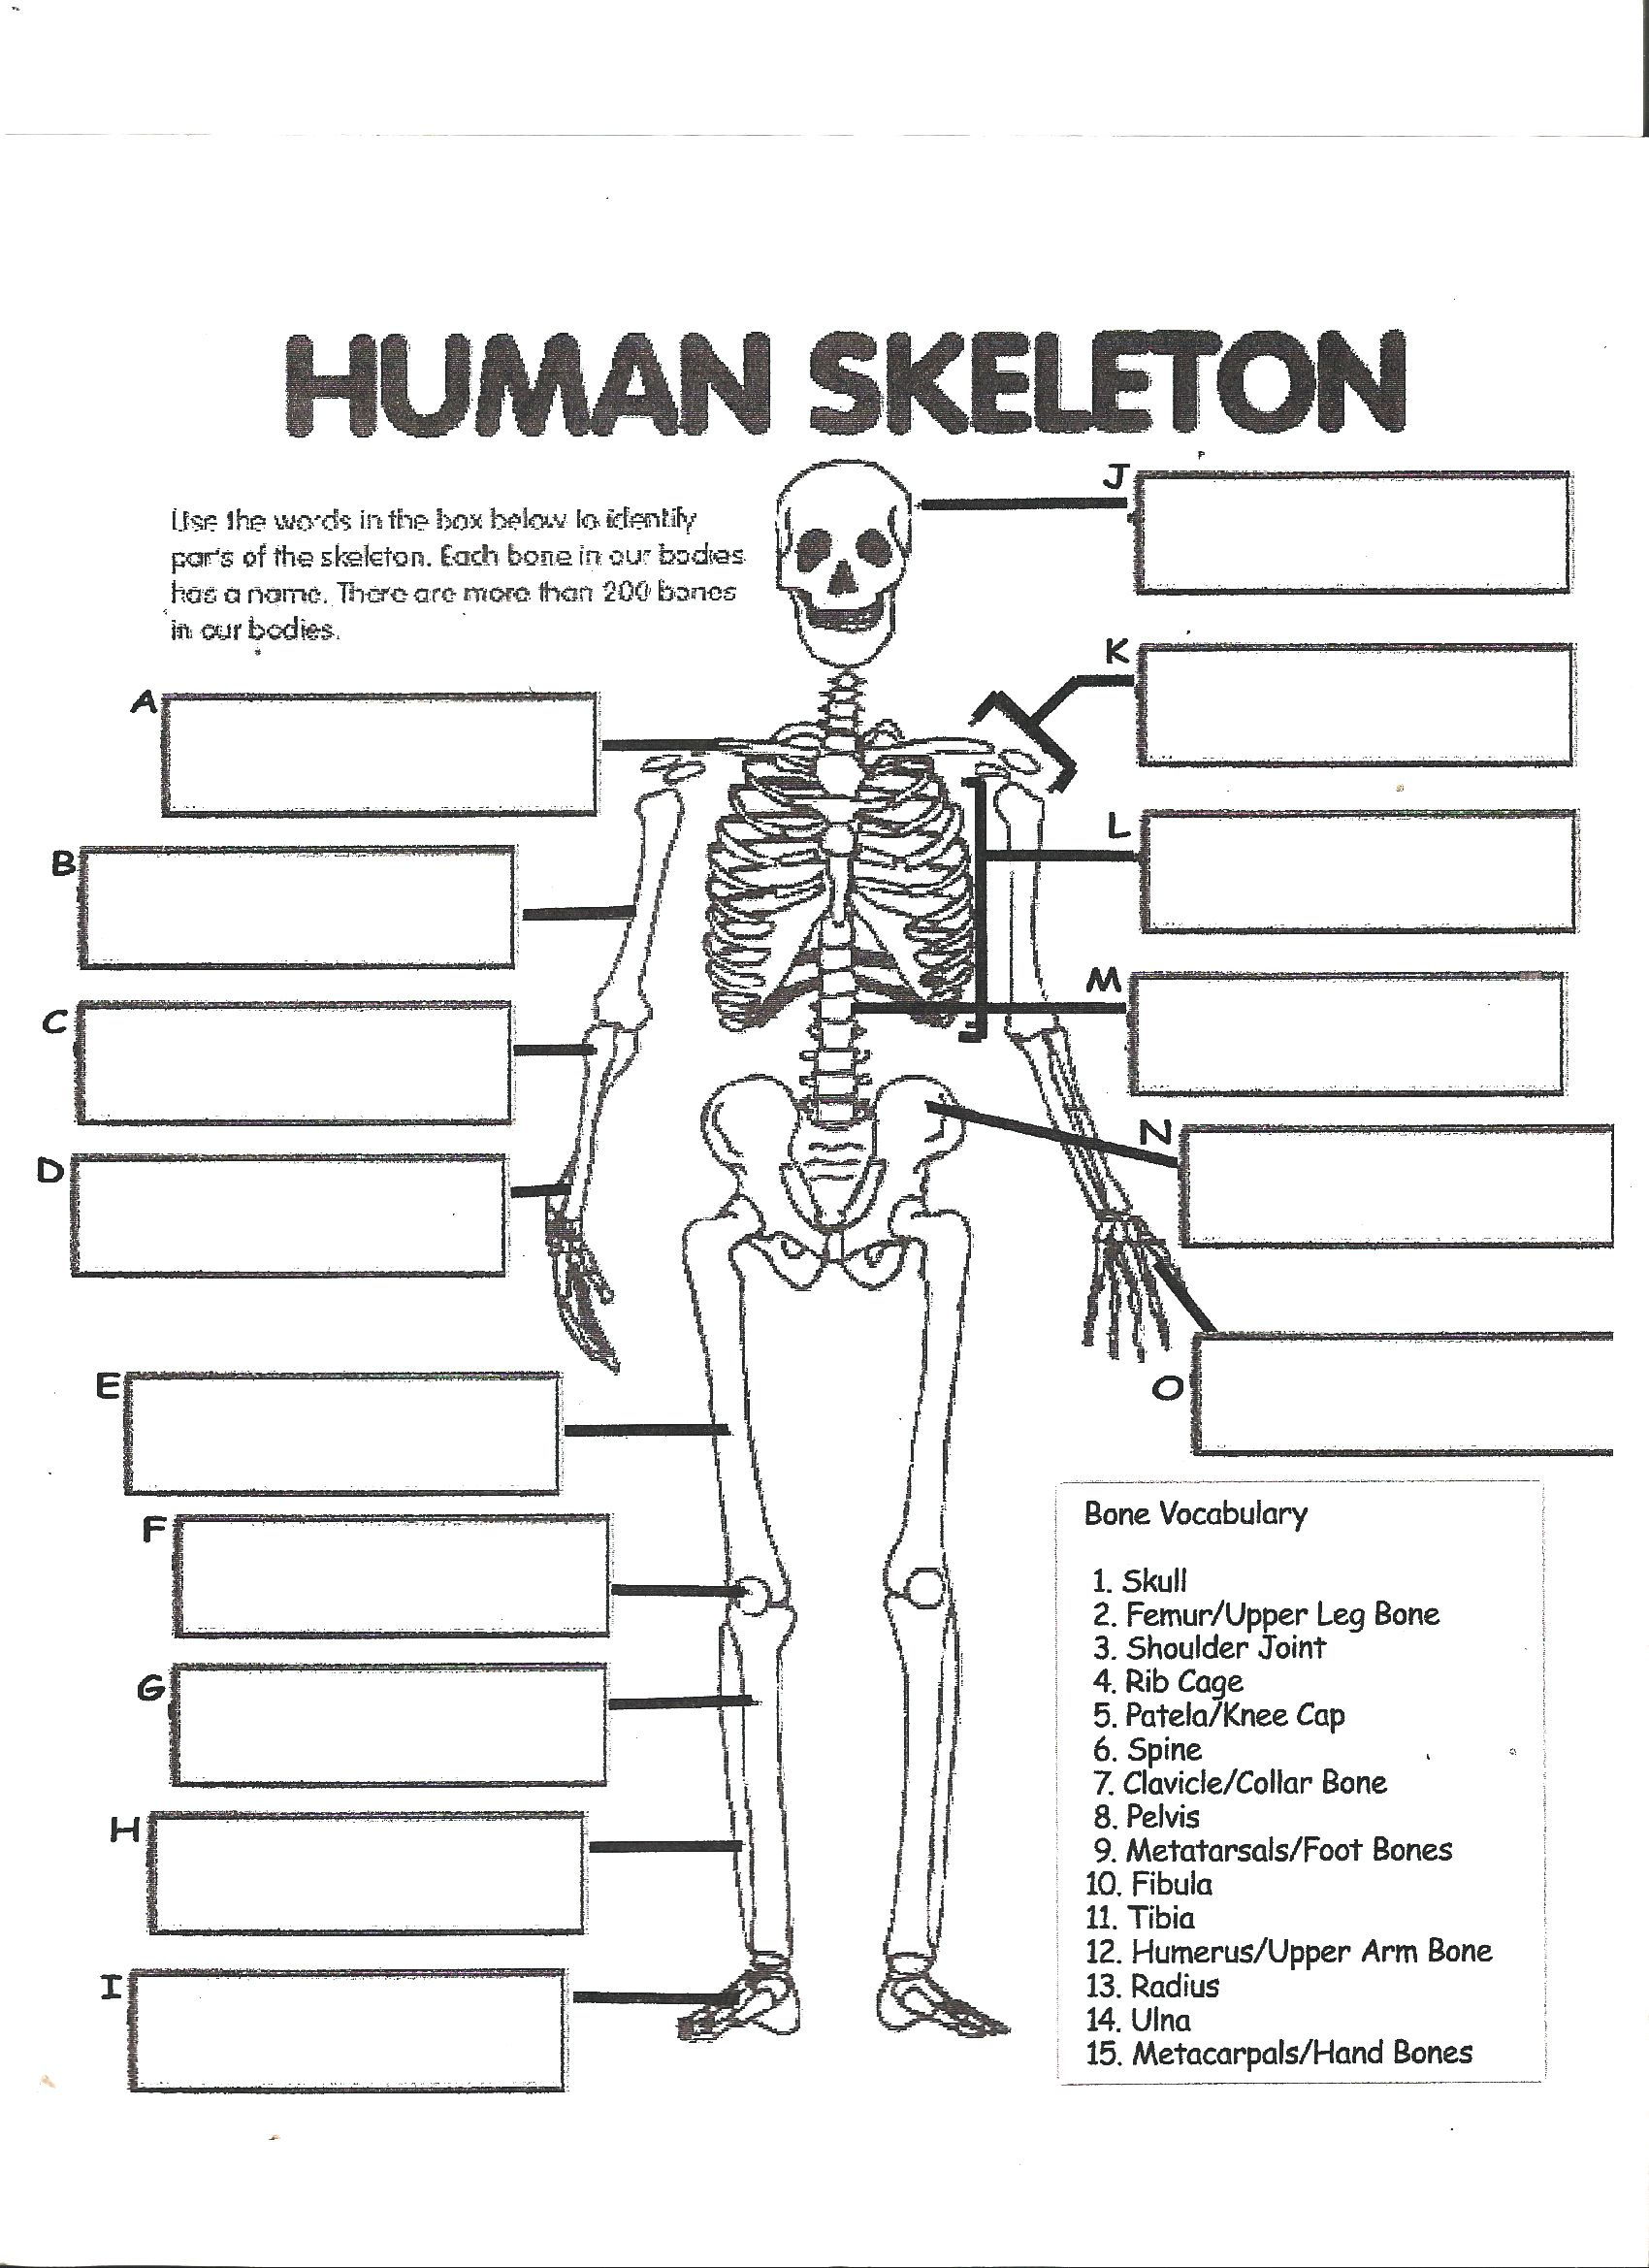 worksheet Skeletal System Fill In The Blank Worksheet digestive system labeling worksheet answers human skeleton skeleton